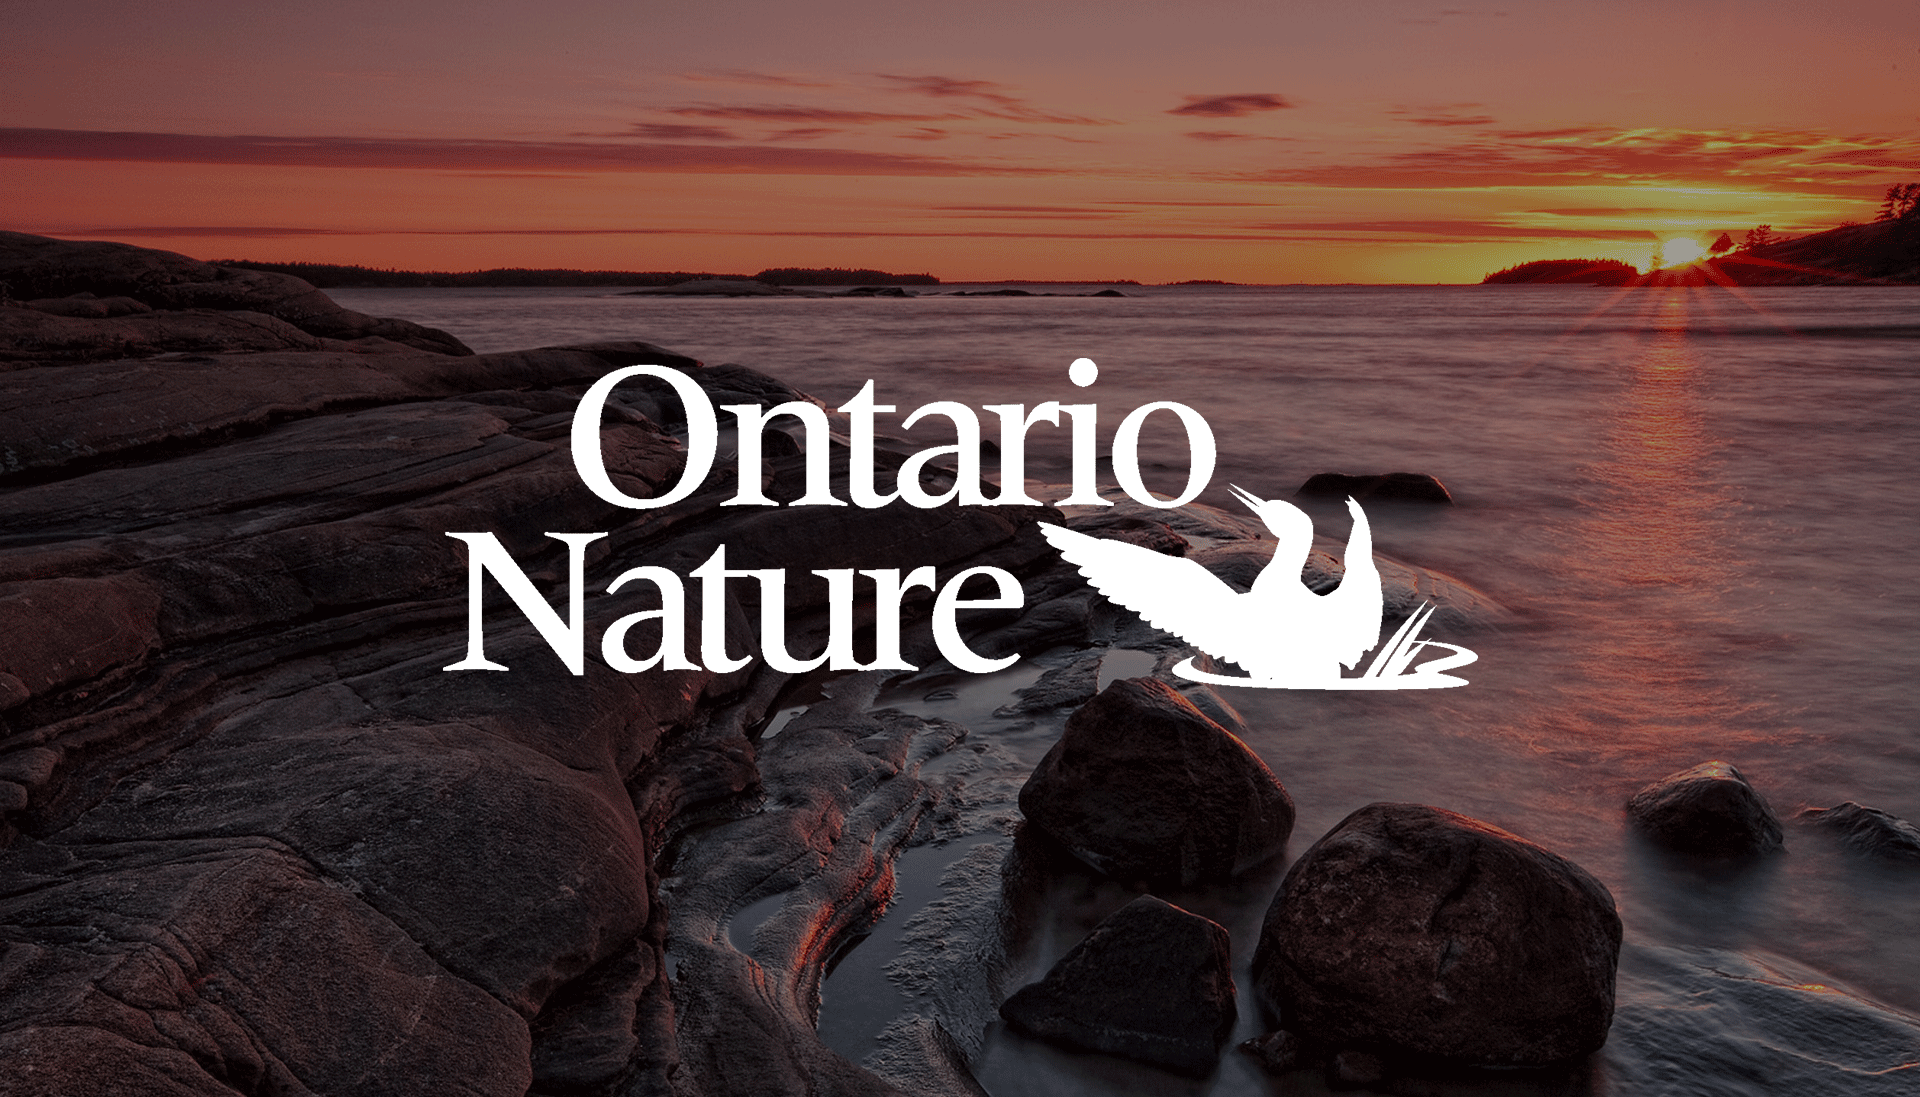 Ontario Nature Logo overlaying sunset and rocky shoreline